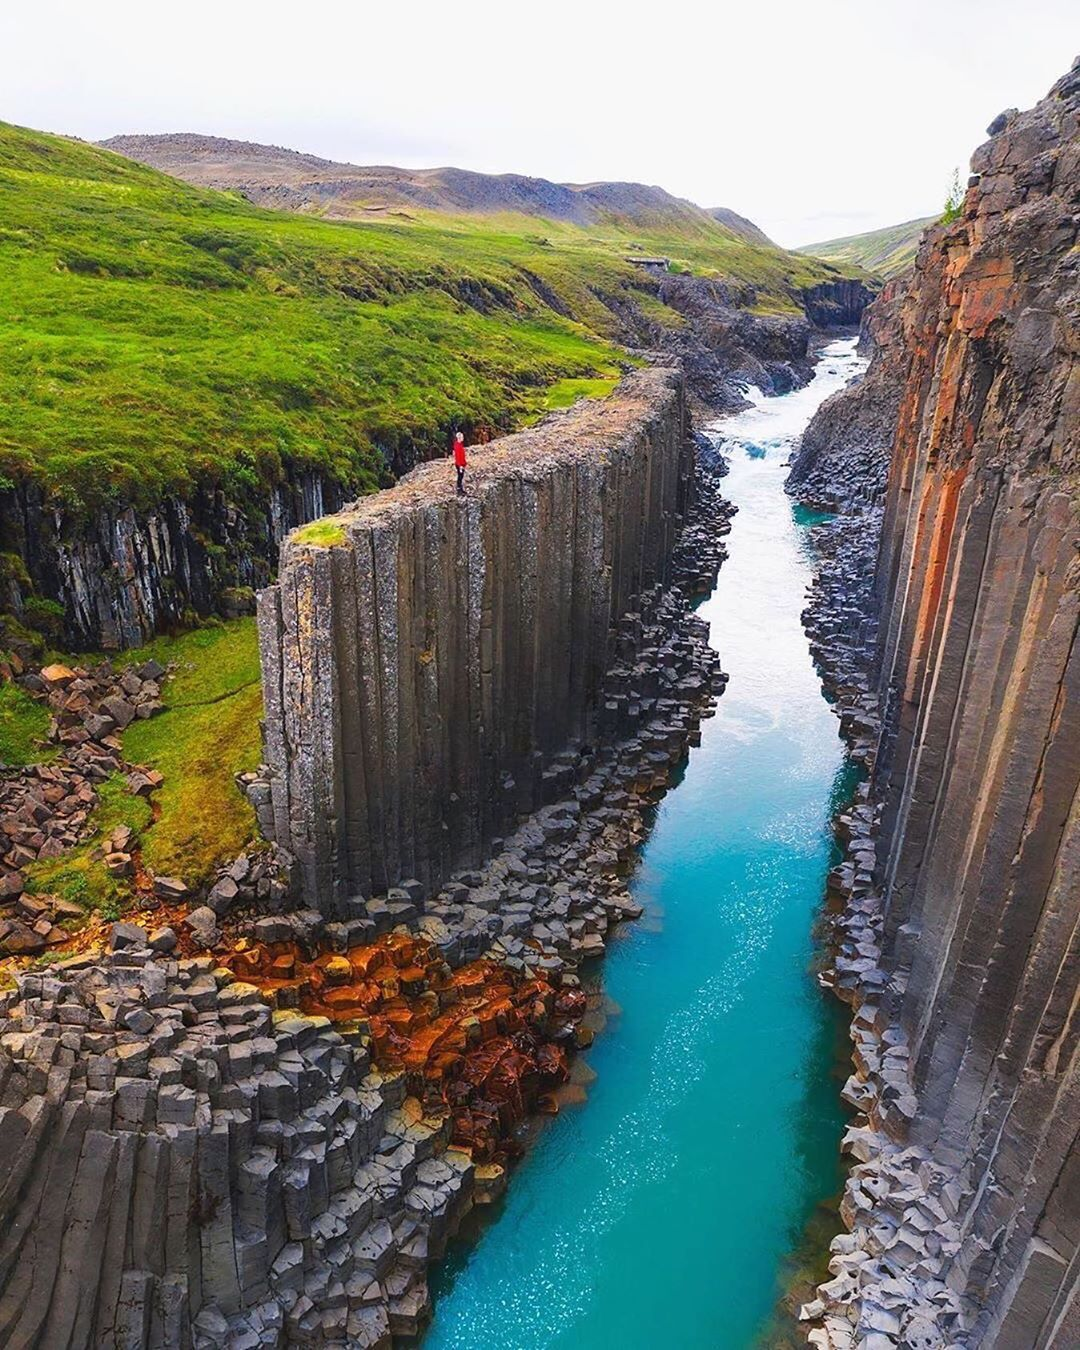 Rare basalt formations of eastern Iceland 🇮🇸 Photo by @h0rdur https://t.co/2JDq5oeS26